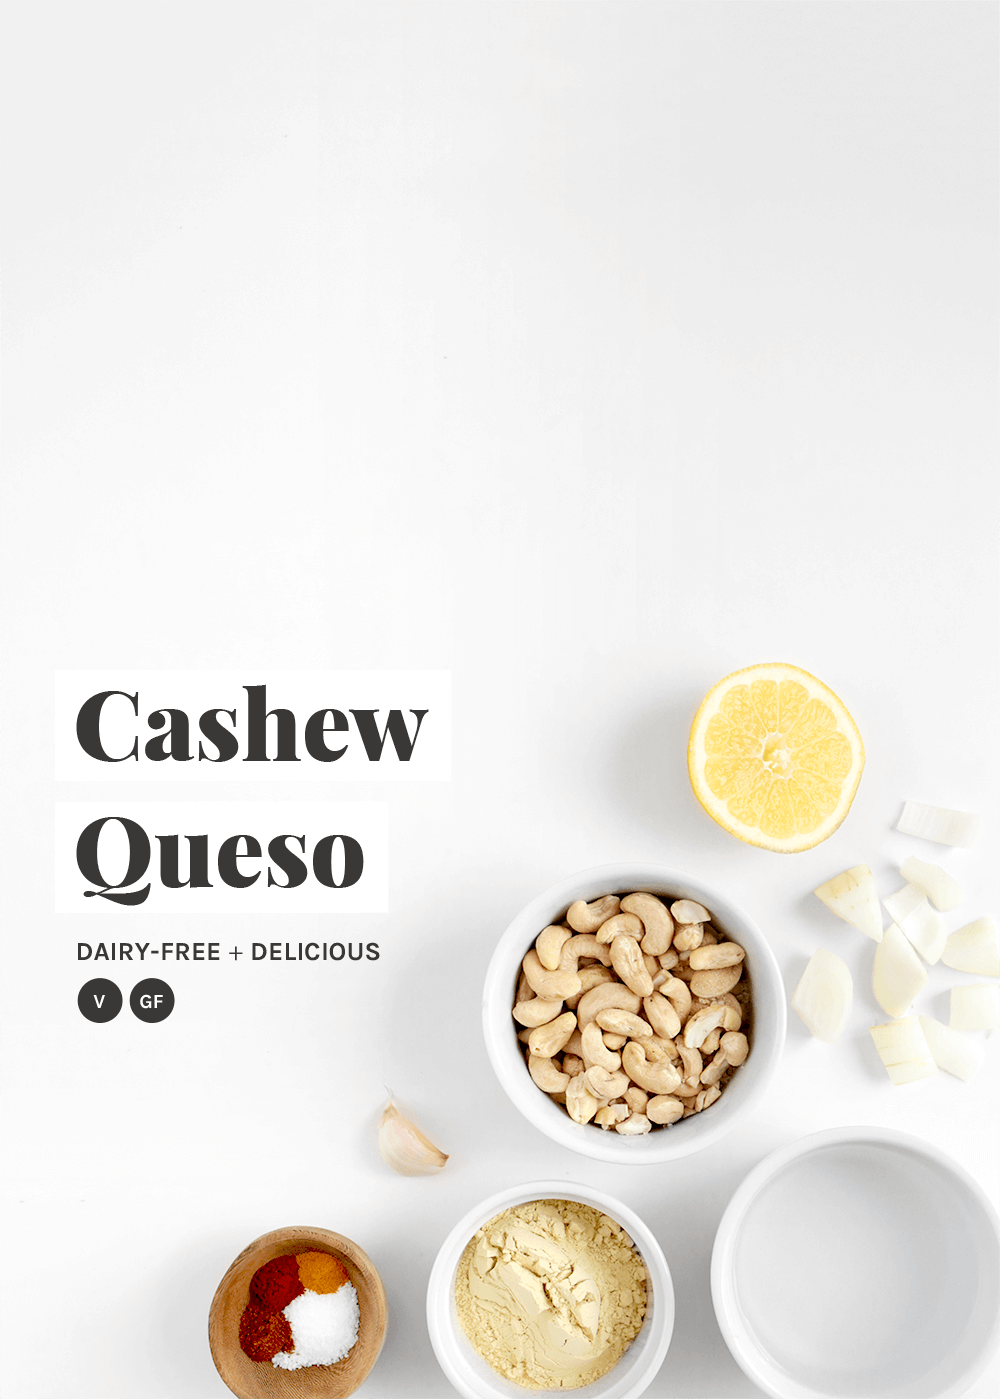 Cashew Queso from the faux martha